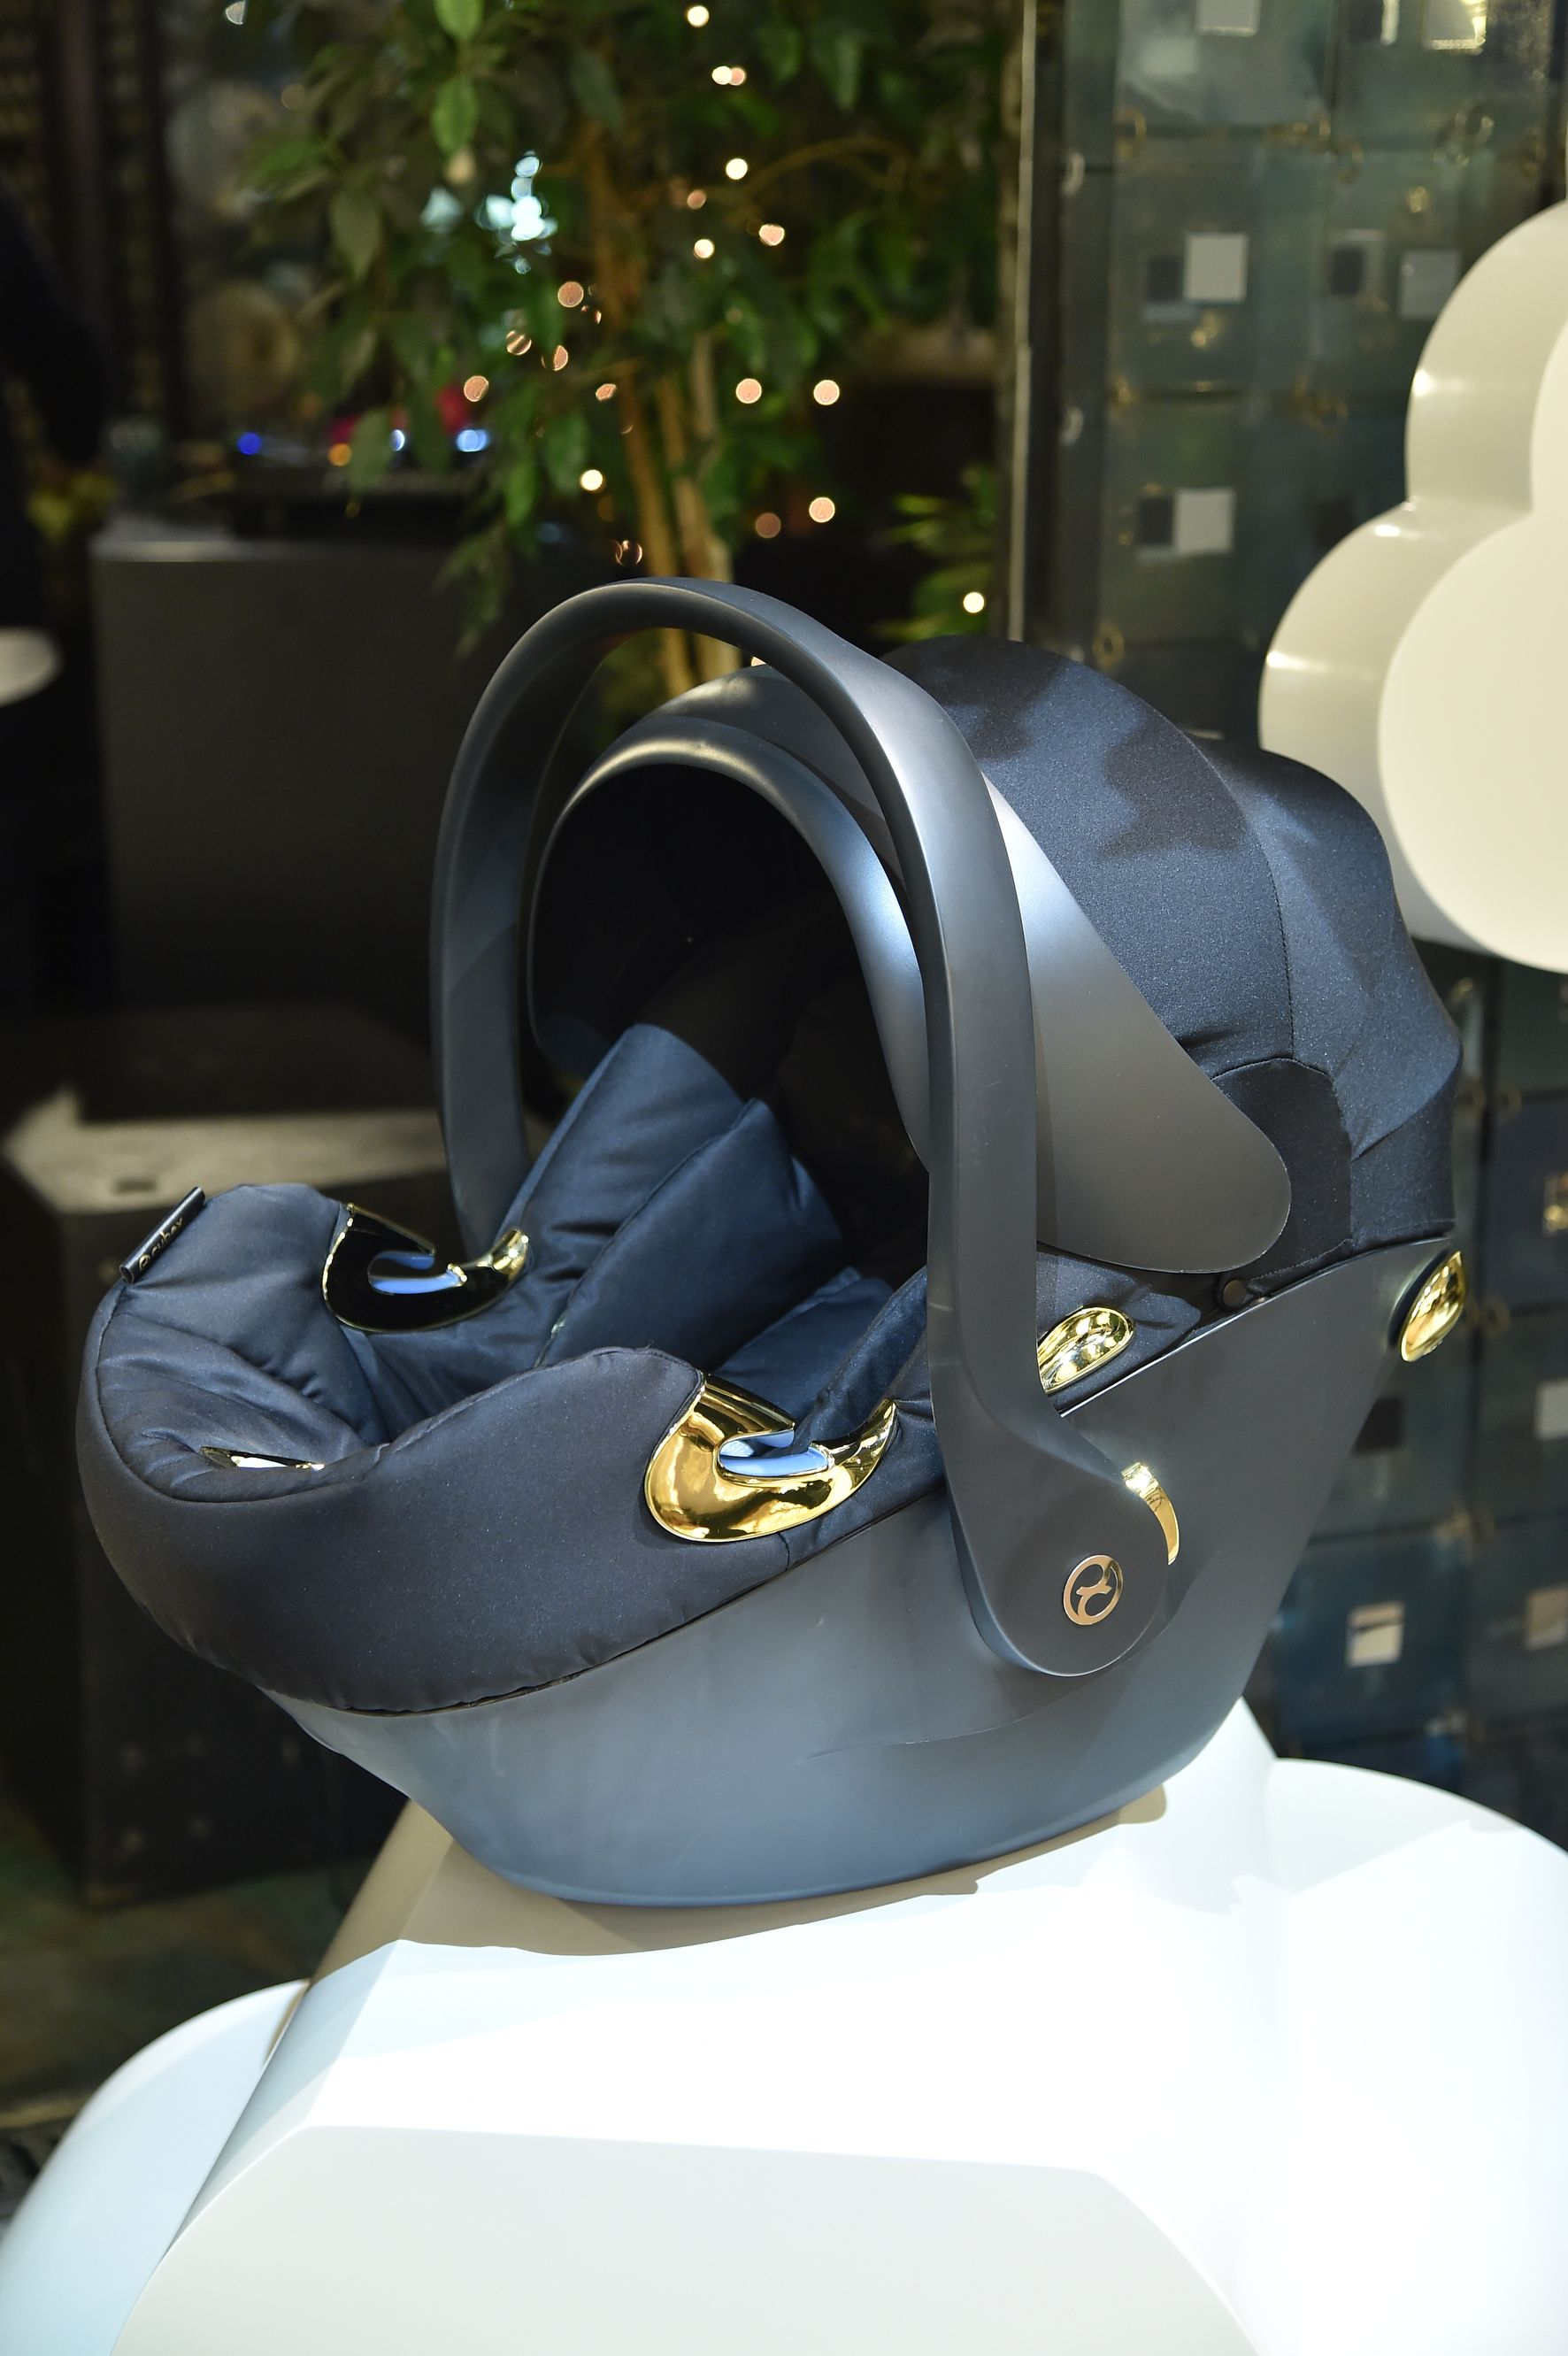 cdc88dbfcb56 The infant car seat ATON Q of the CYBEX by Jeremy Scott Capsule Collection